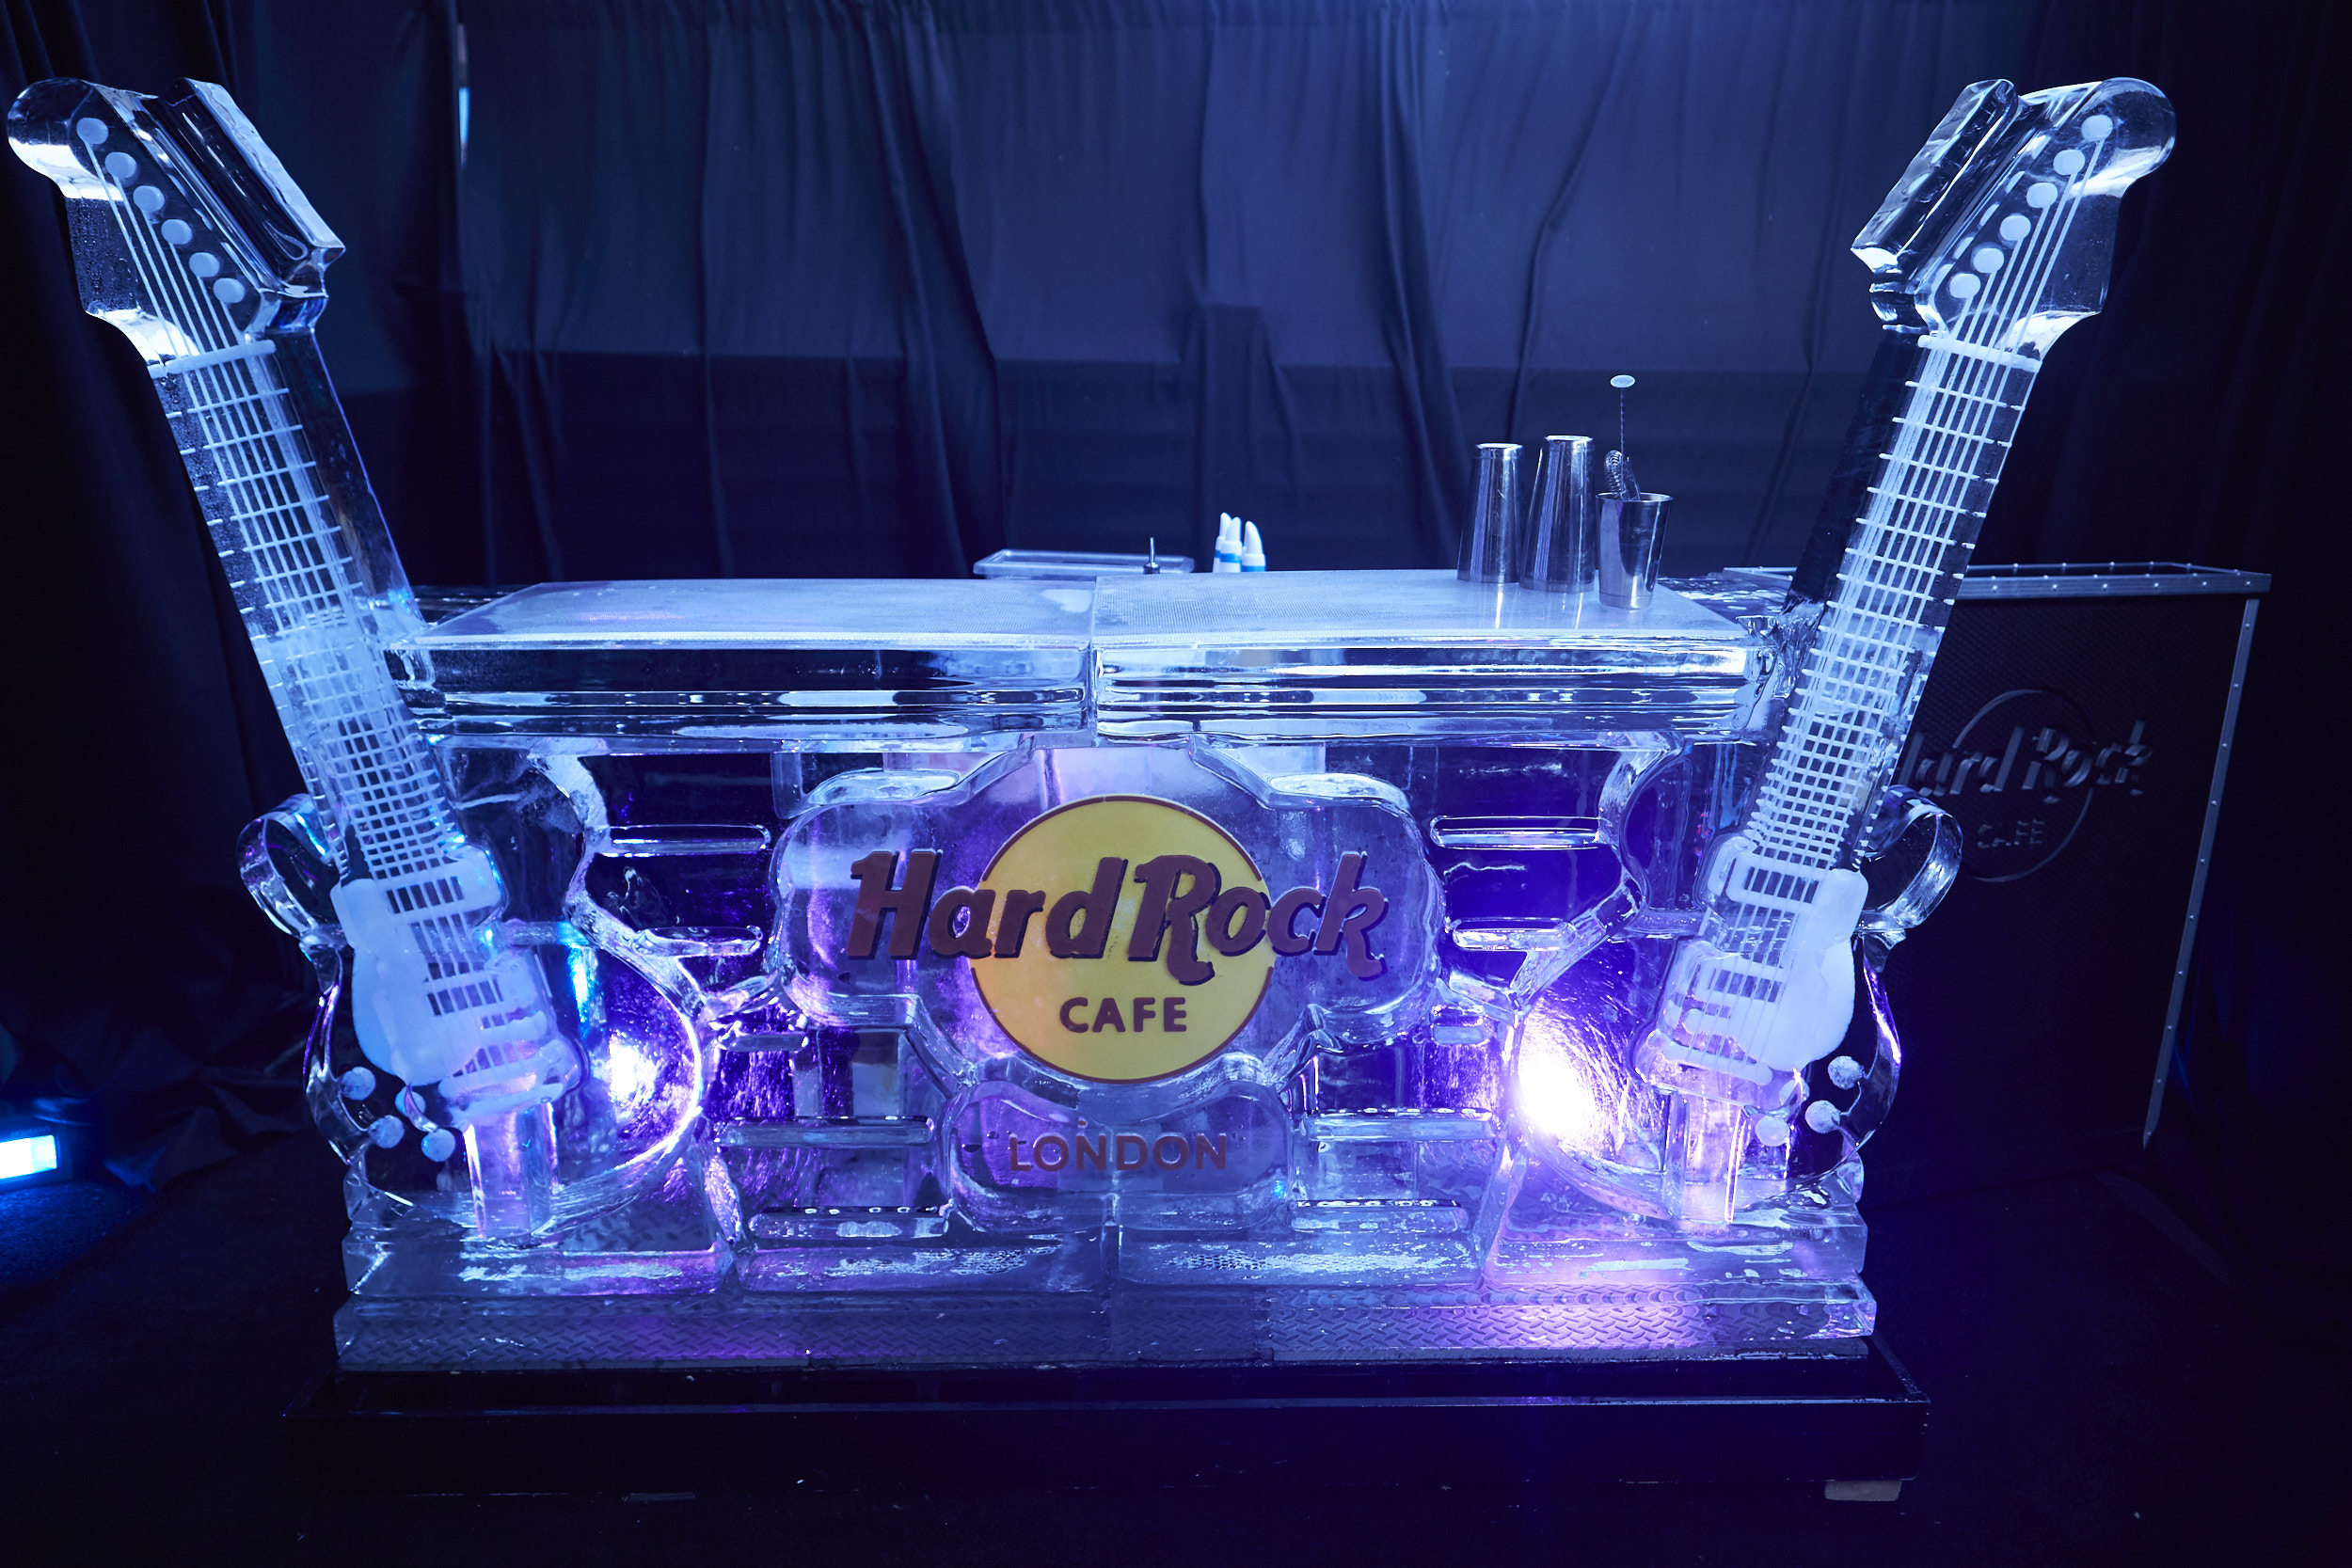 Hard Rock Cafe ice bar serving up delicious milkshakes.